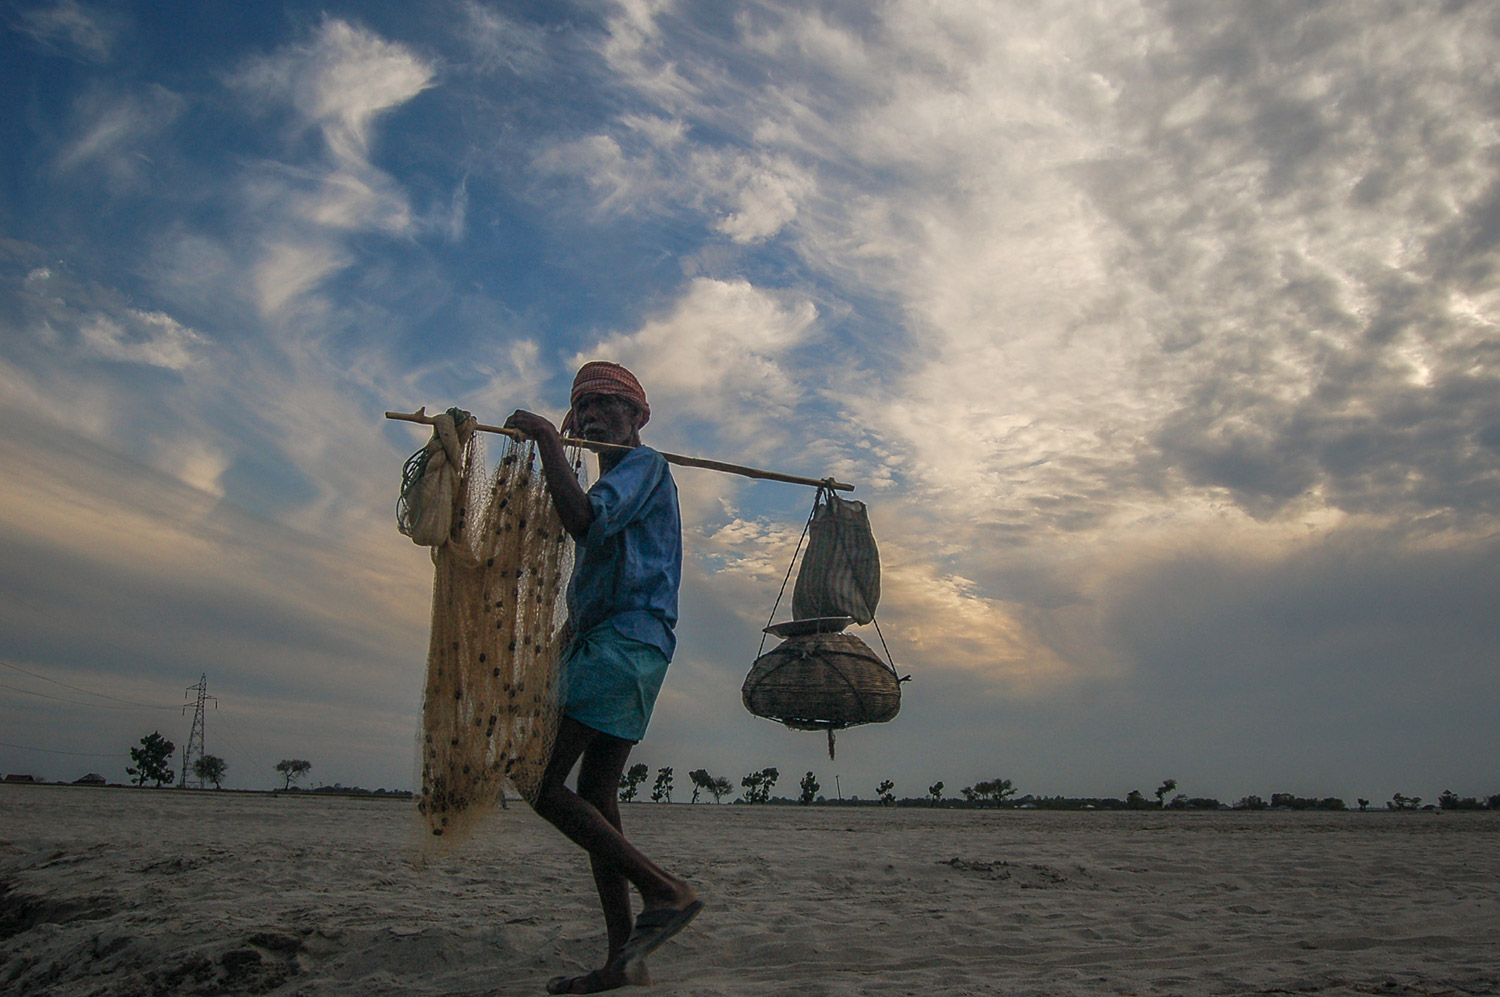 A fisherman returns home with his catch after spending a long day in the Sapta Koshi River in Sundari, where fishing is supplementary to traditional agriculture. Photo: Bijay Gajmer